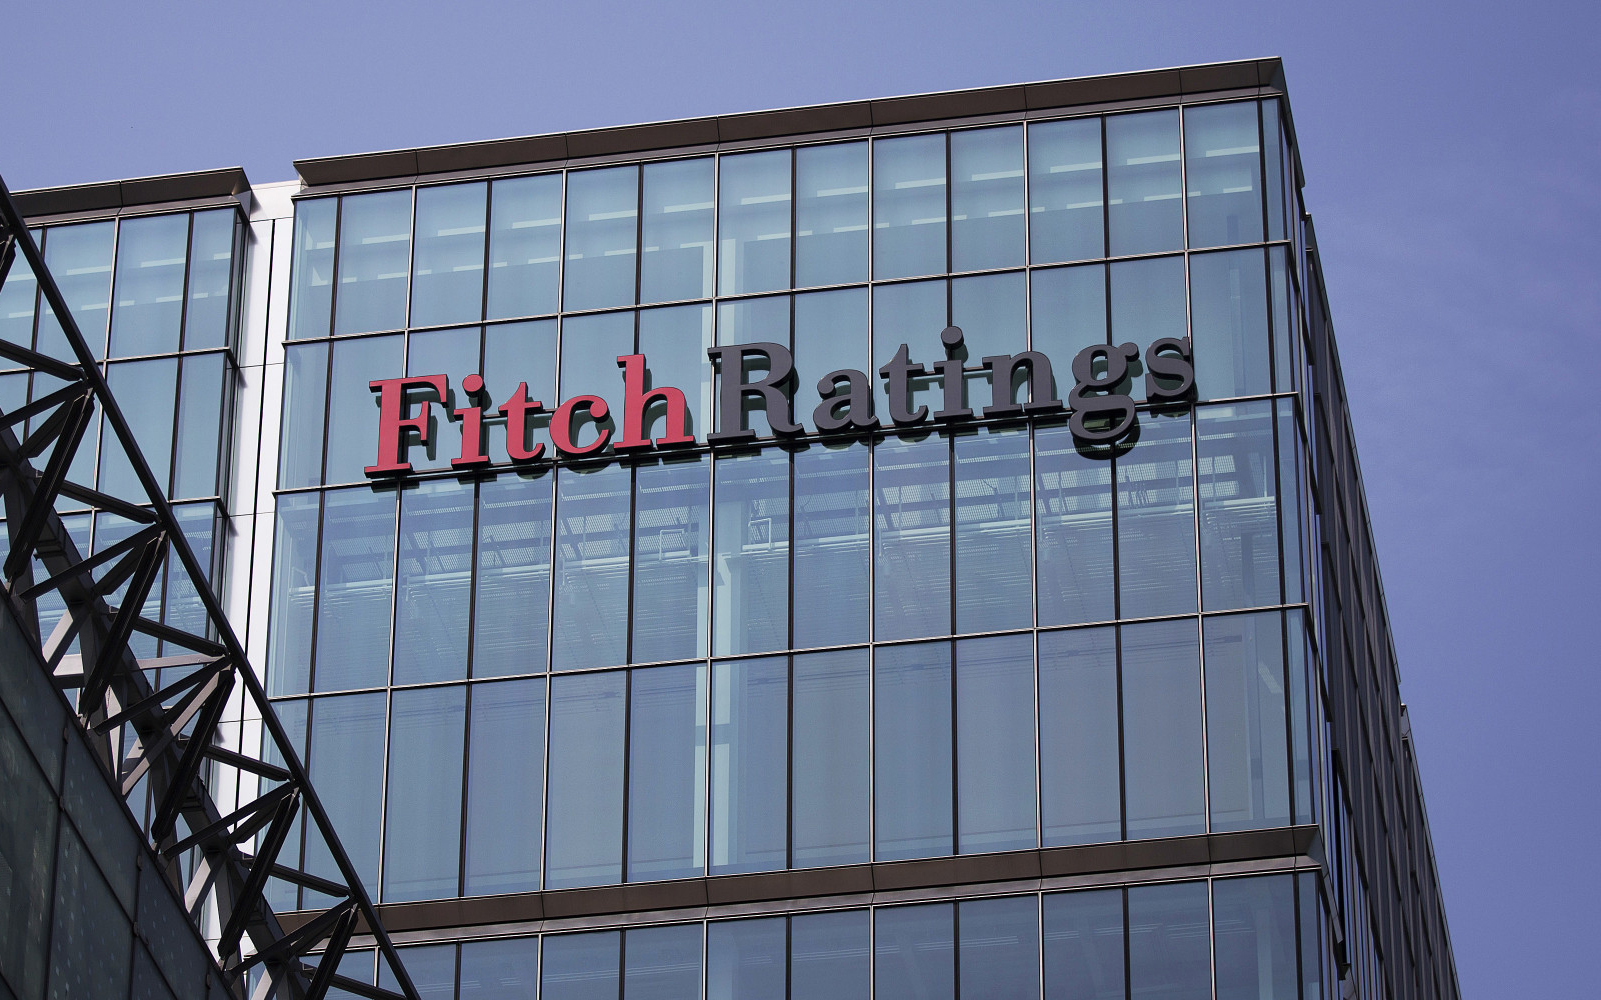 Fitch affirms Romania at 'BBB-', outlook stable